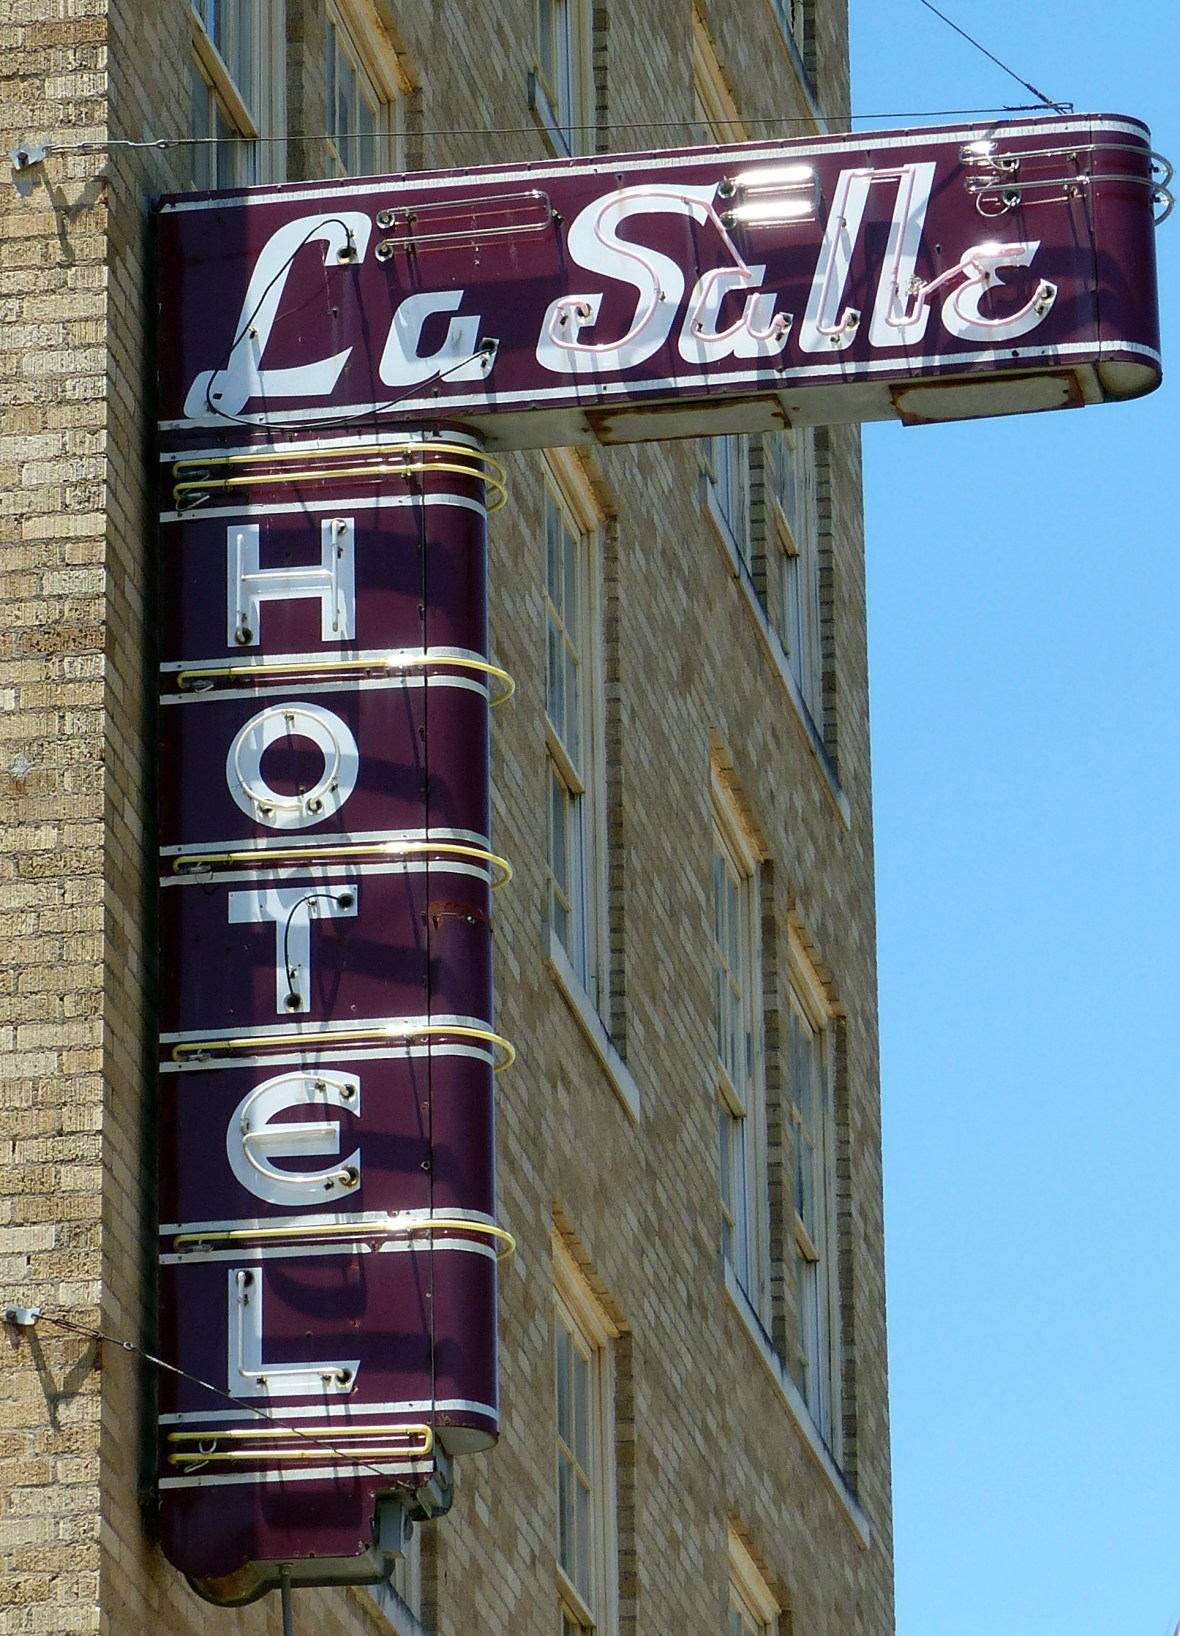 LaSalle Hotel - 120 South Main Street, Bryan, Texas U.S.A. - May 25, 2017